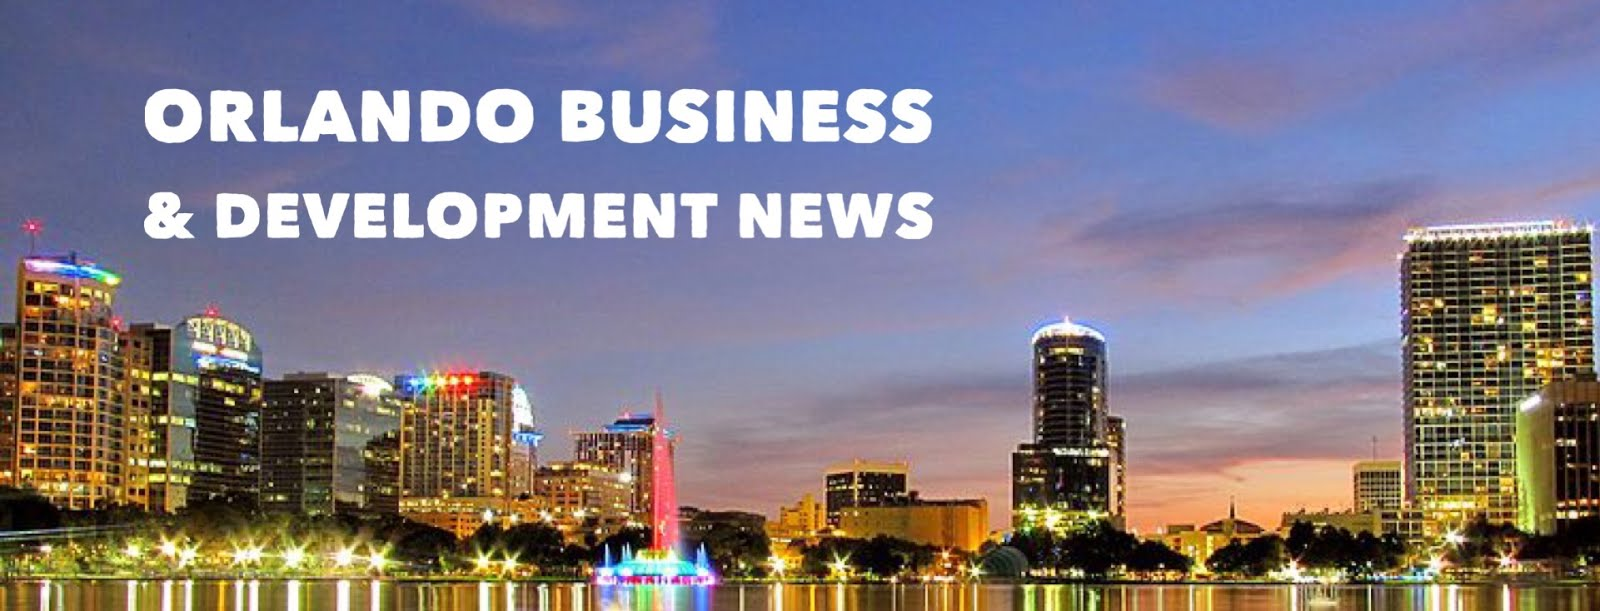 Orlando Business and Development News